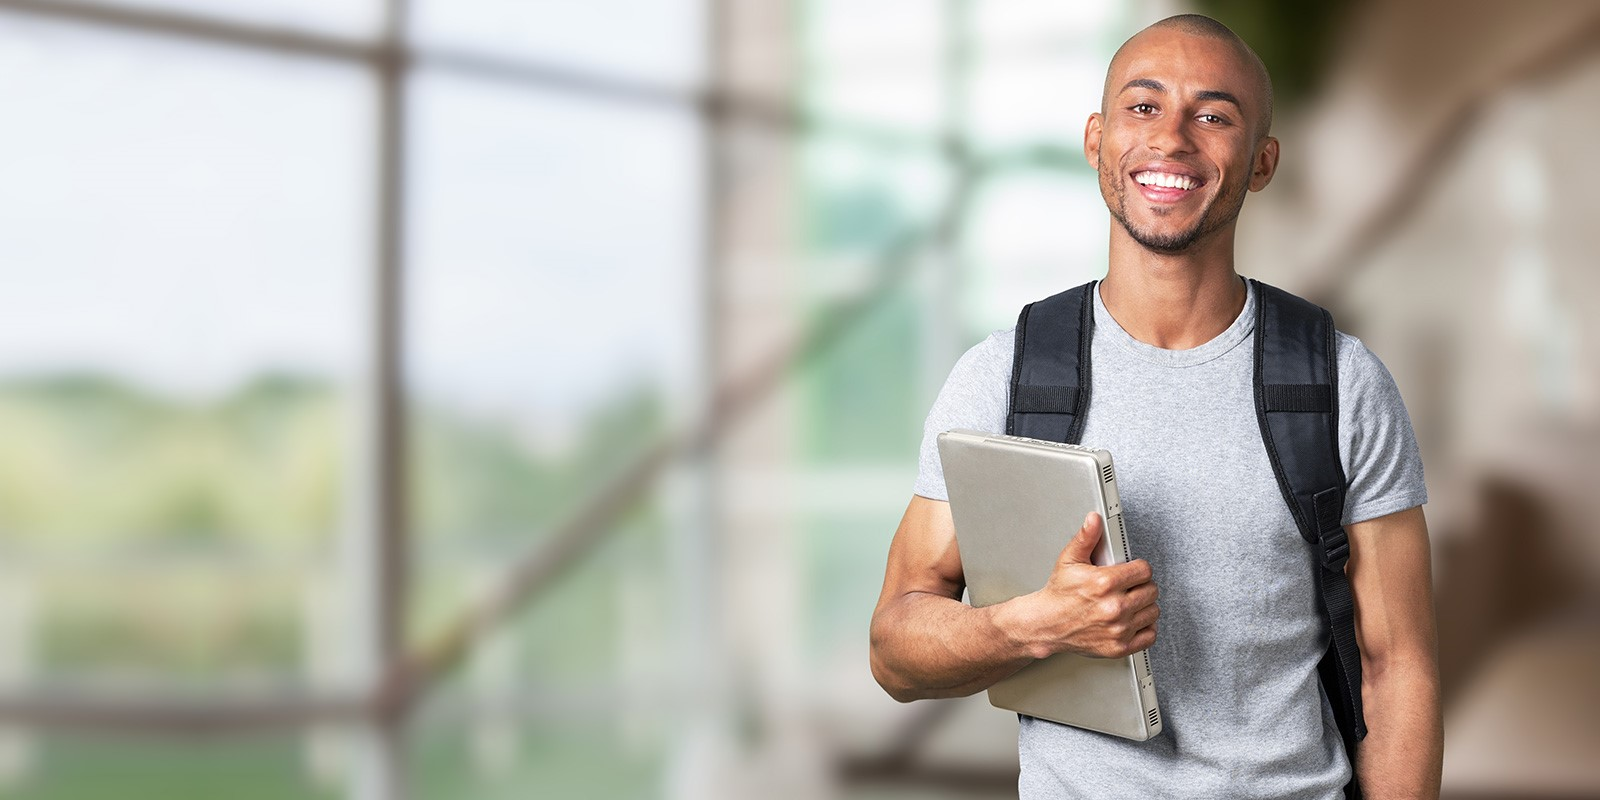 Going to College: 7 Big Talks to Have Before They Leave